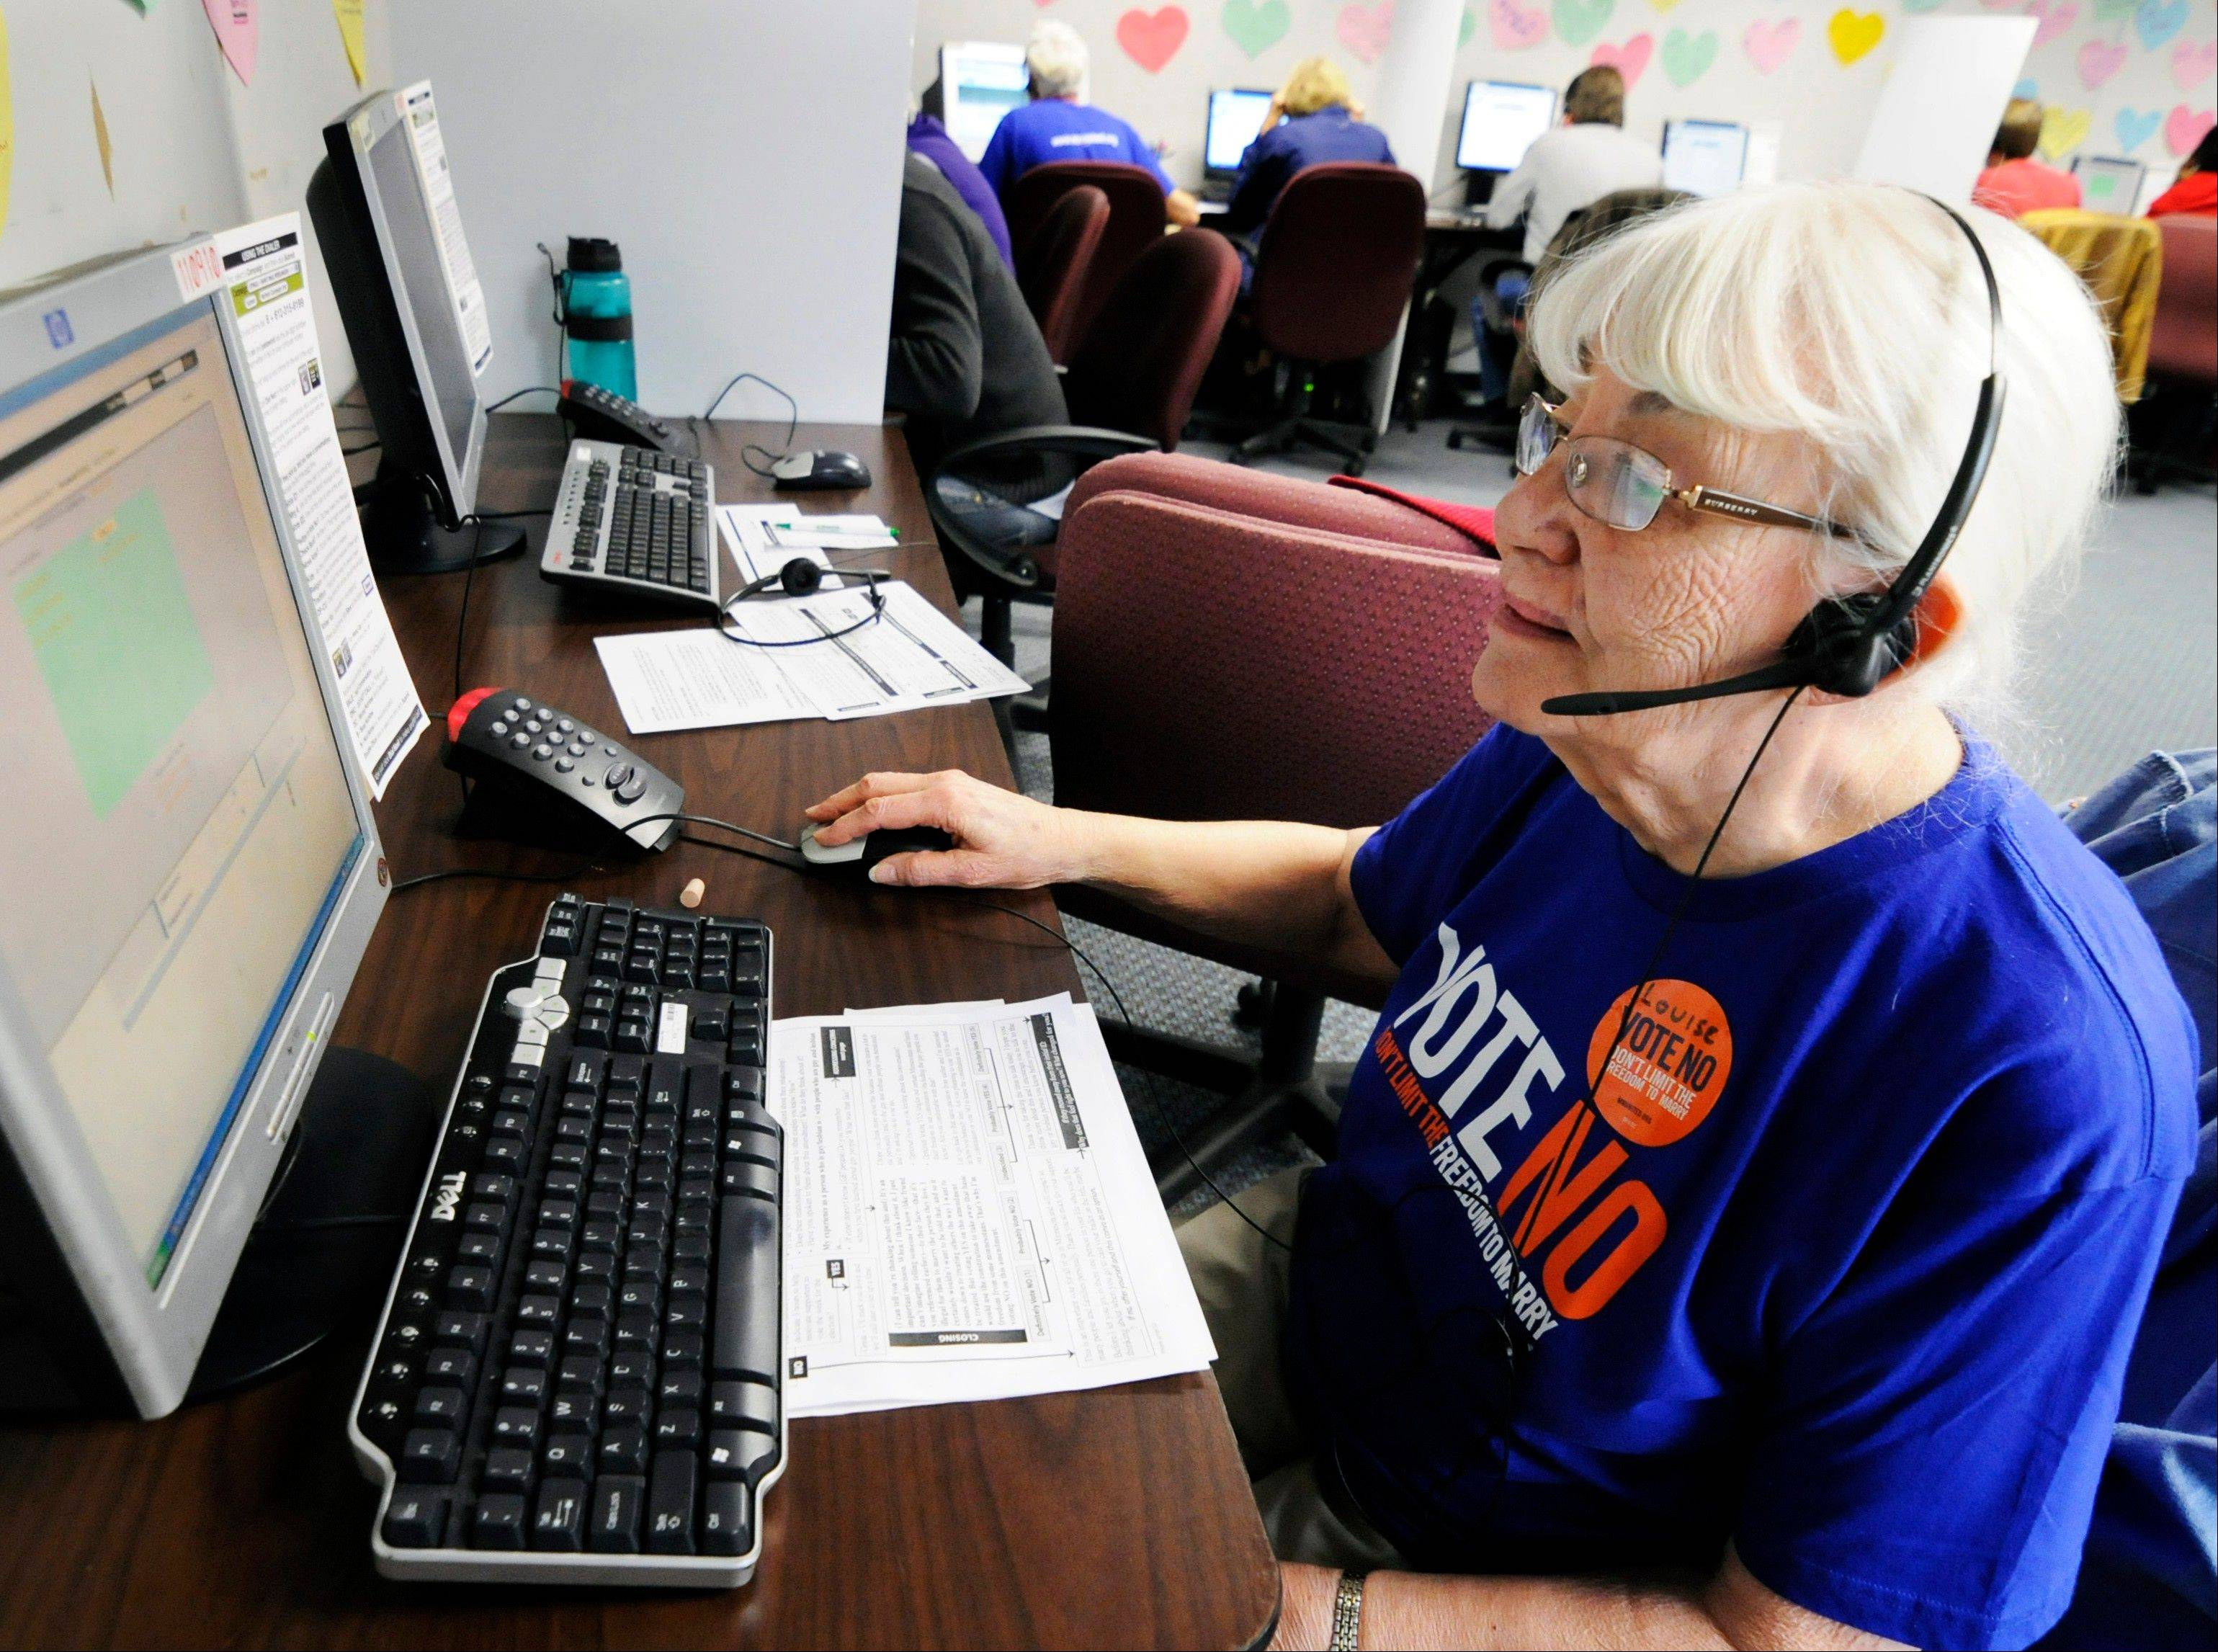 Louise Pardee calls fellow senior citizens from a Shoreview, Minn, phone bank to urge them to vote against a proposed constitutional ban on gay marriage on Minnesota's statewide ballot next month. The phone bank was sponsored by Minnesotans United for All Families, the campaign trying to defeat the amendment.